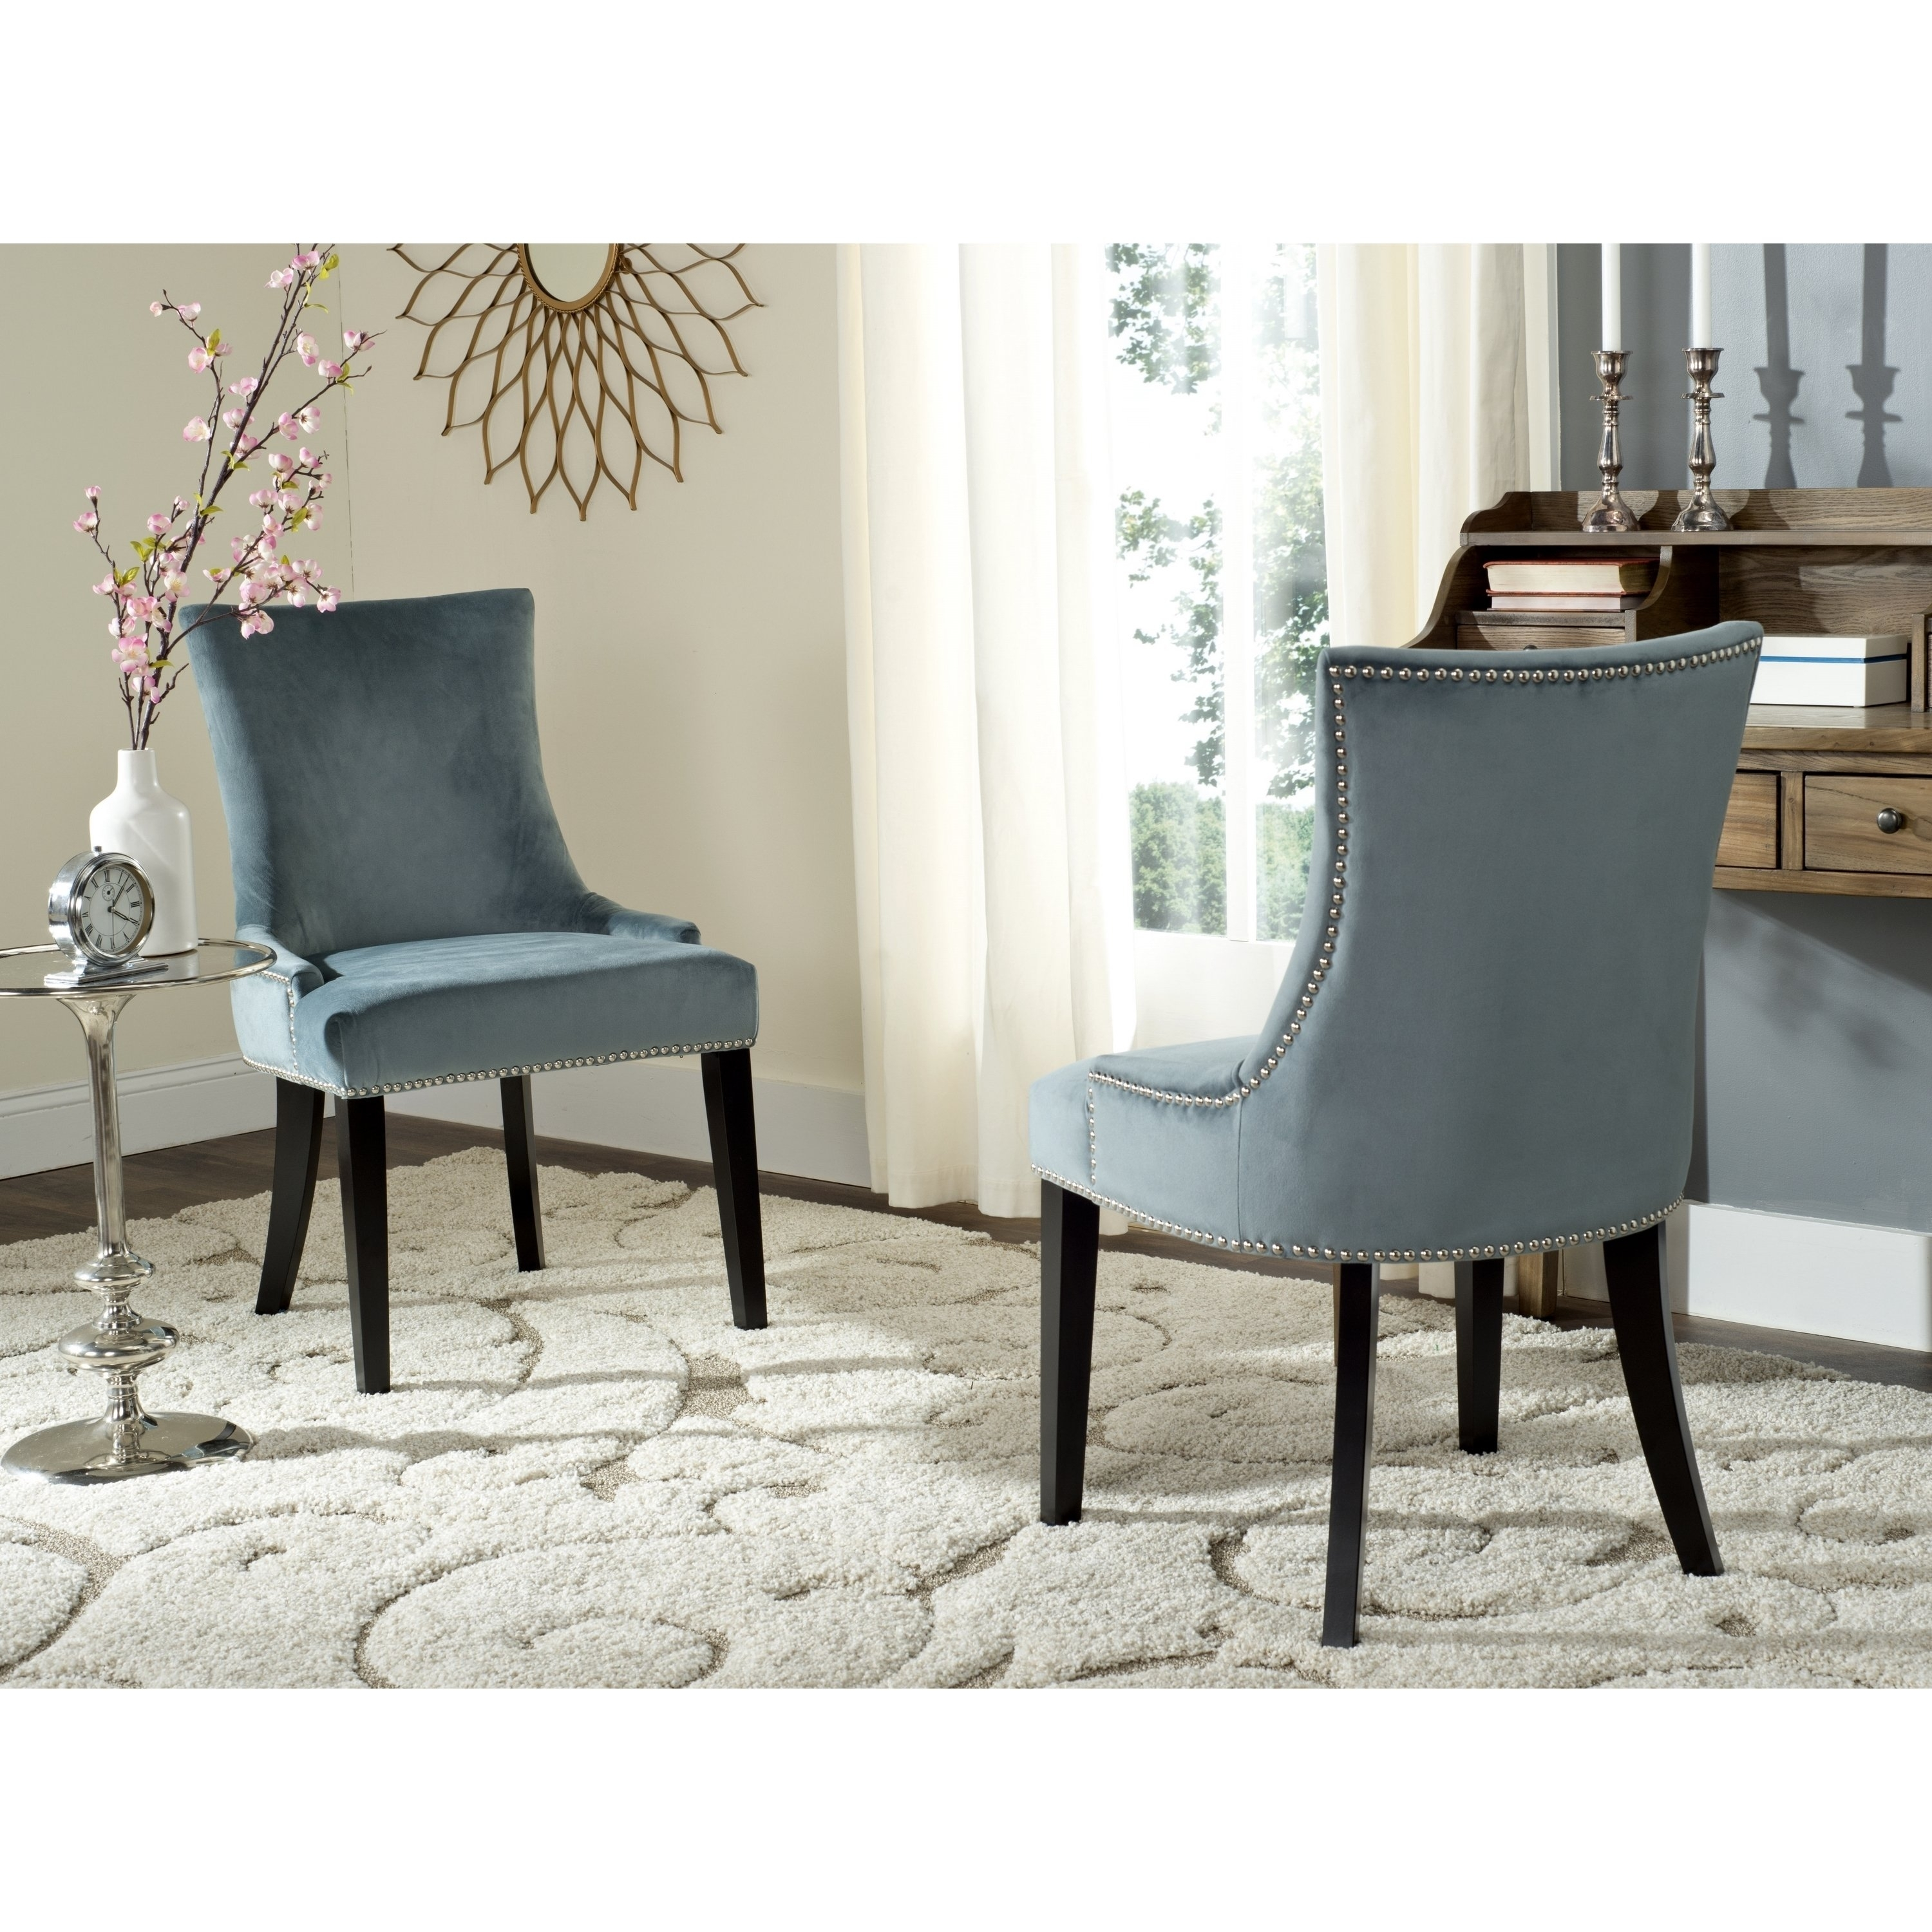 Buy Espresso Finish, Fabric Kitchen & Dining Room Chairs Online At Intended For Well Liked Garten Linen Skirted Side Chairs Set Of  (View 2 of 20)